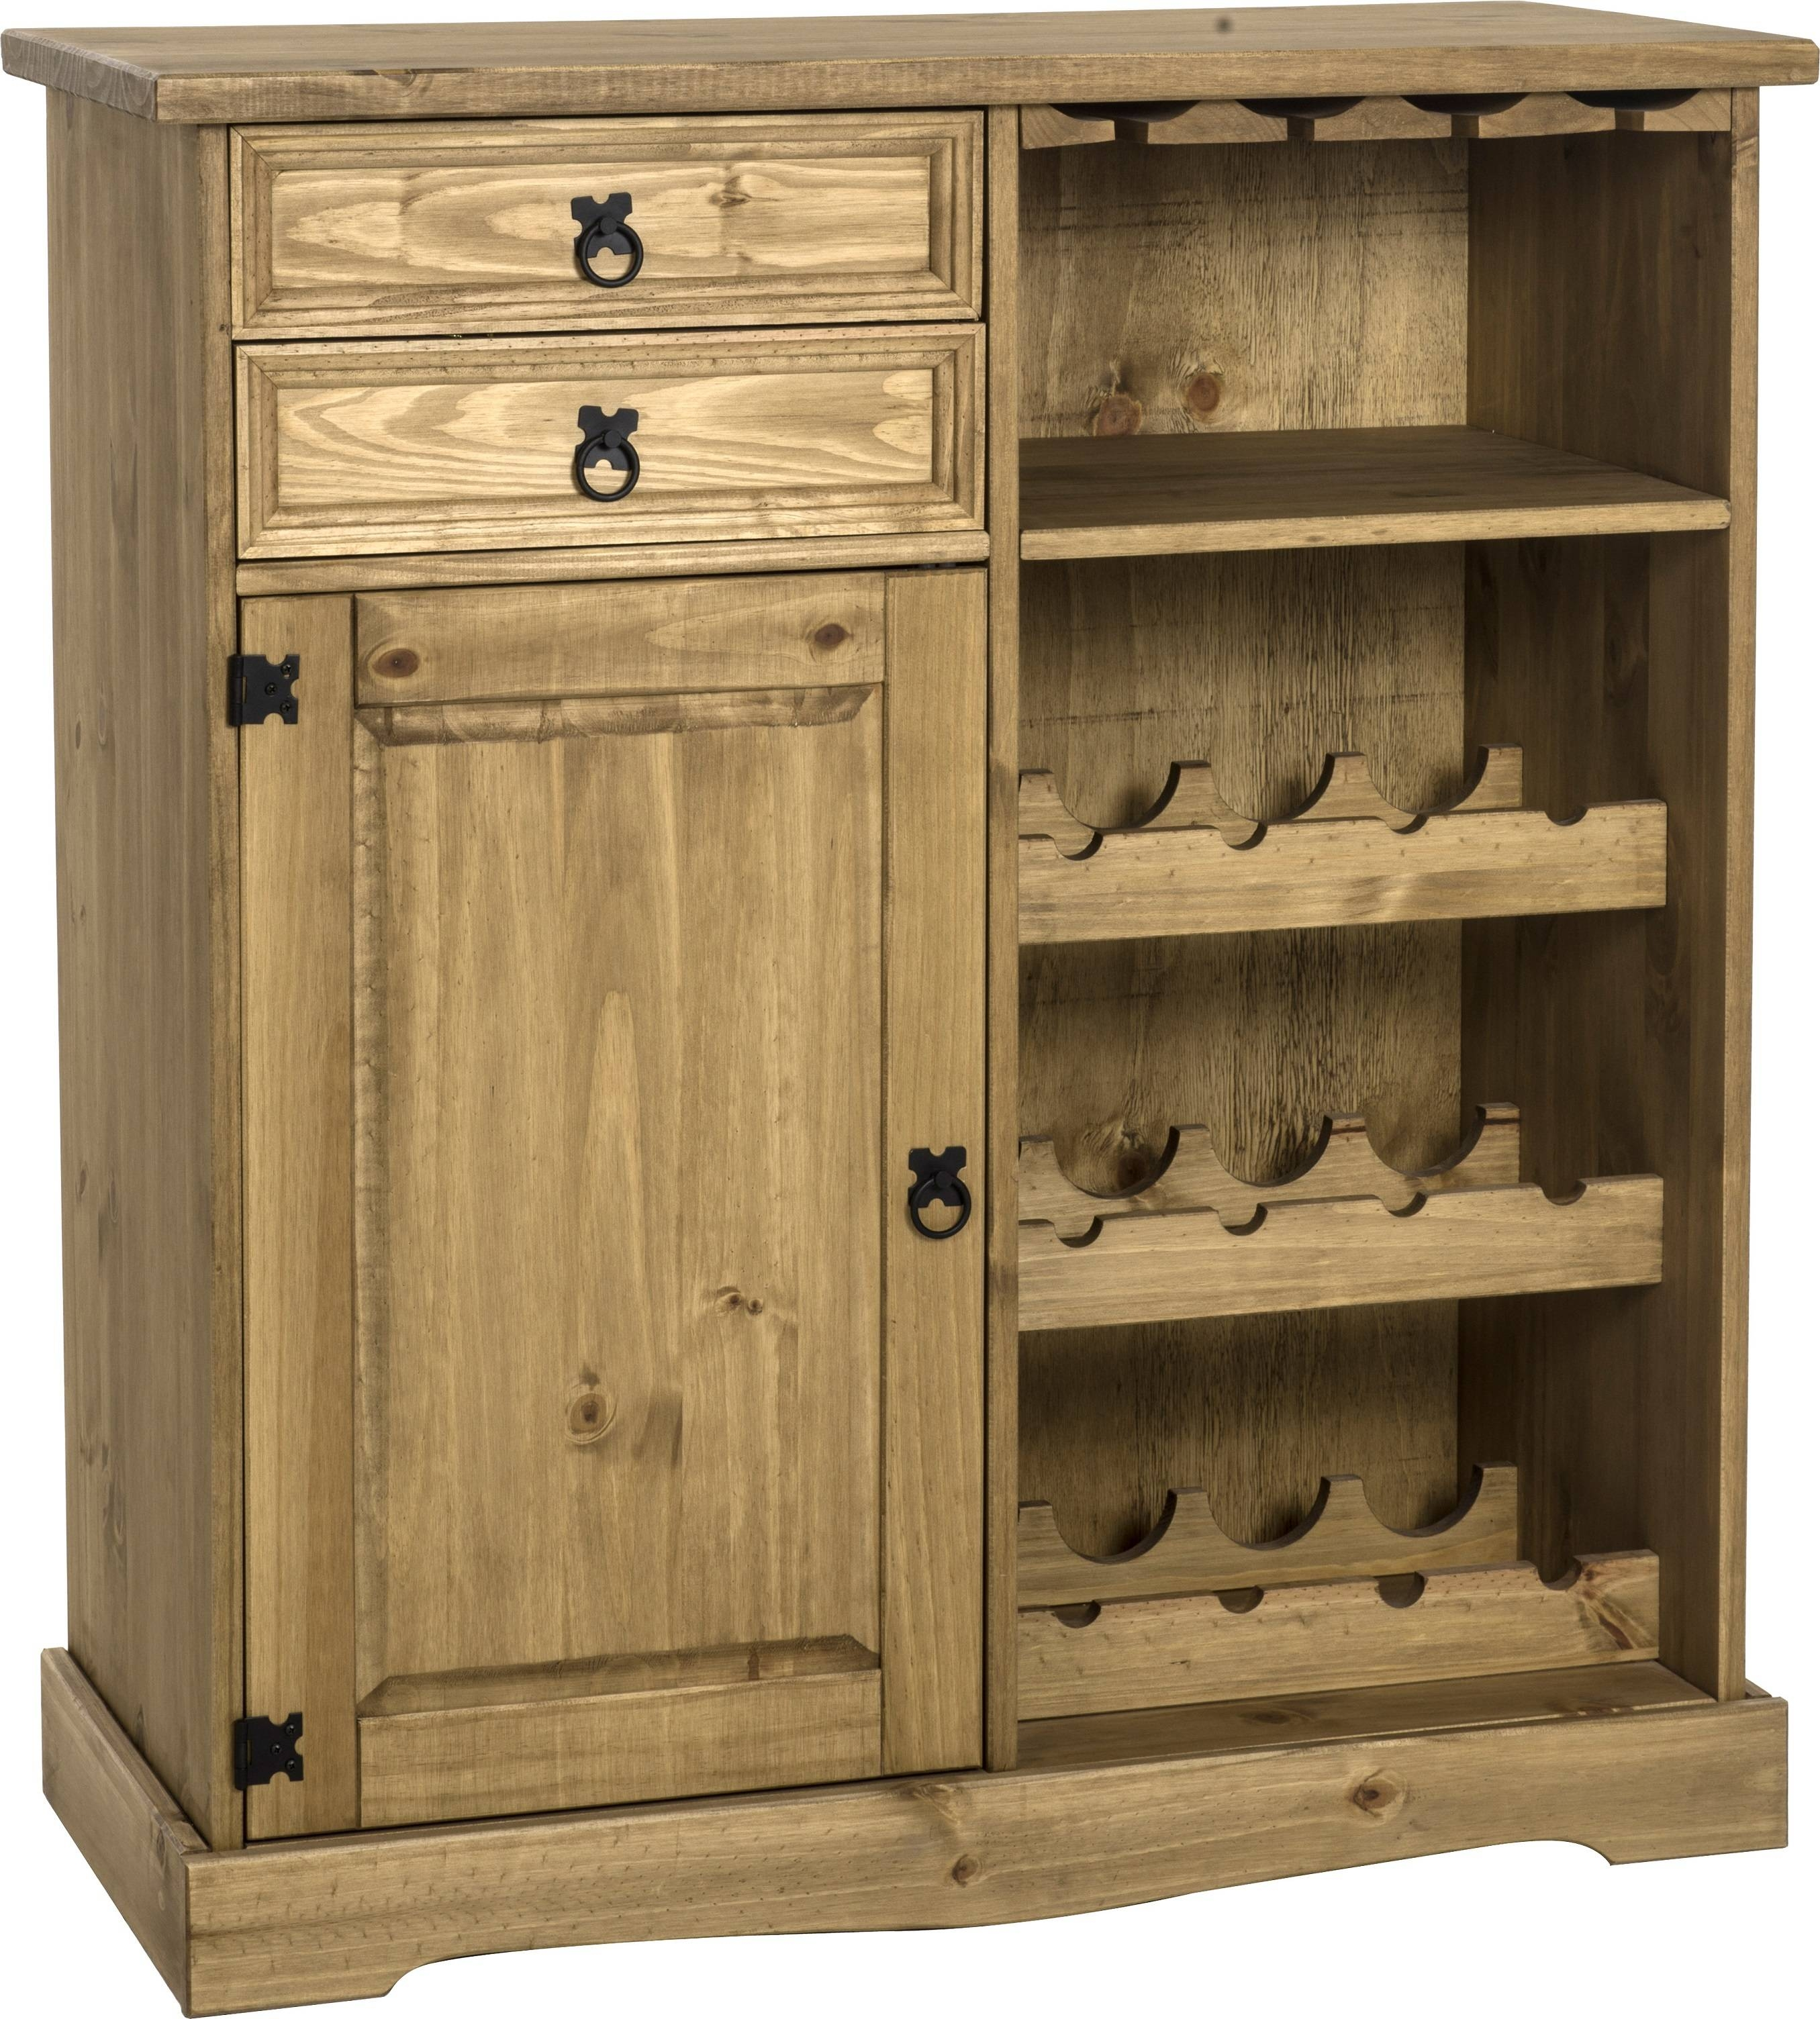 Corona 2 Door Cupboard Unit | Solidwood Furniture within Mexican Sideboards (Image 2 of 30)